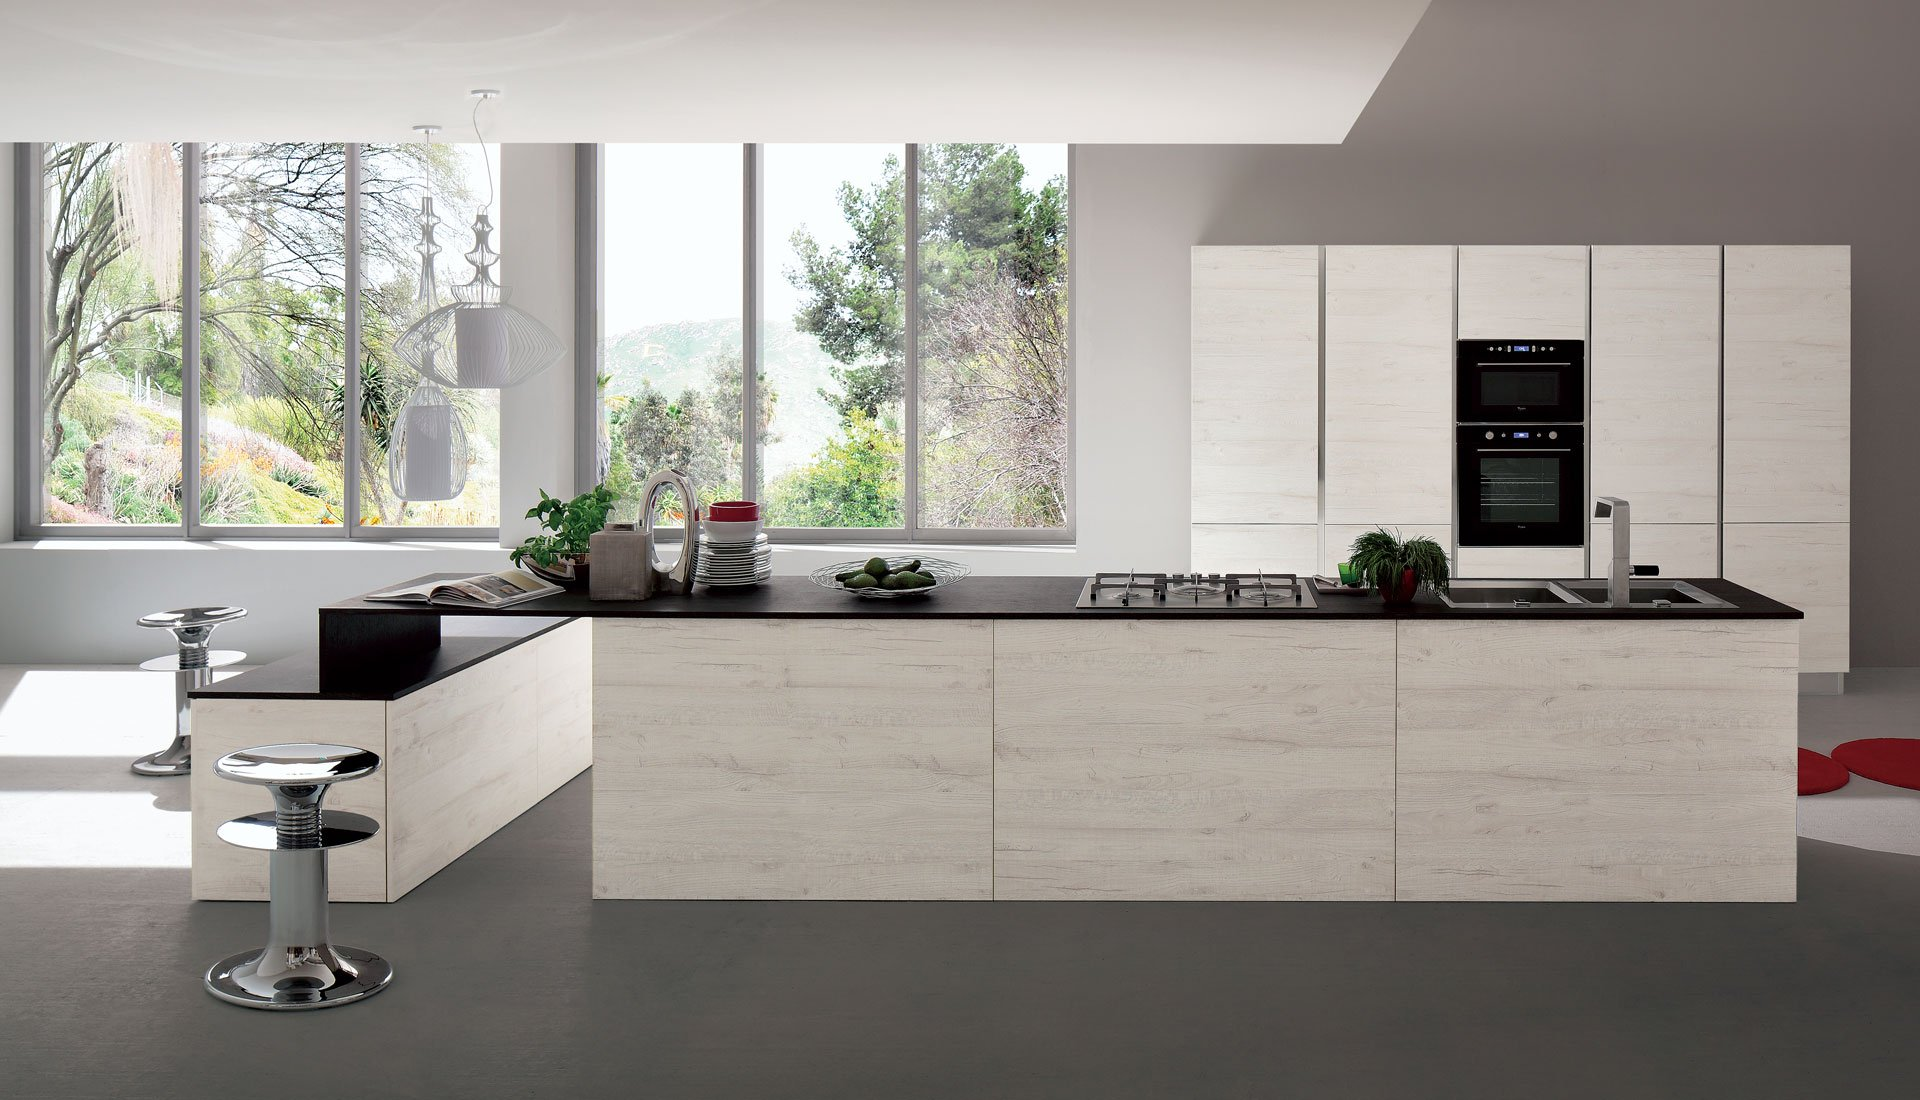 Cucina Moderna In Rovere Sbiancato